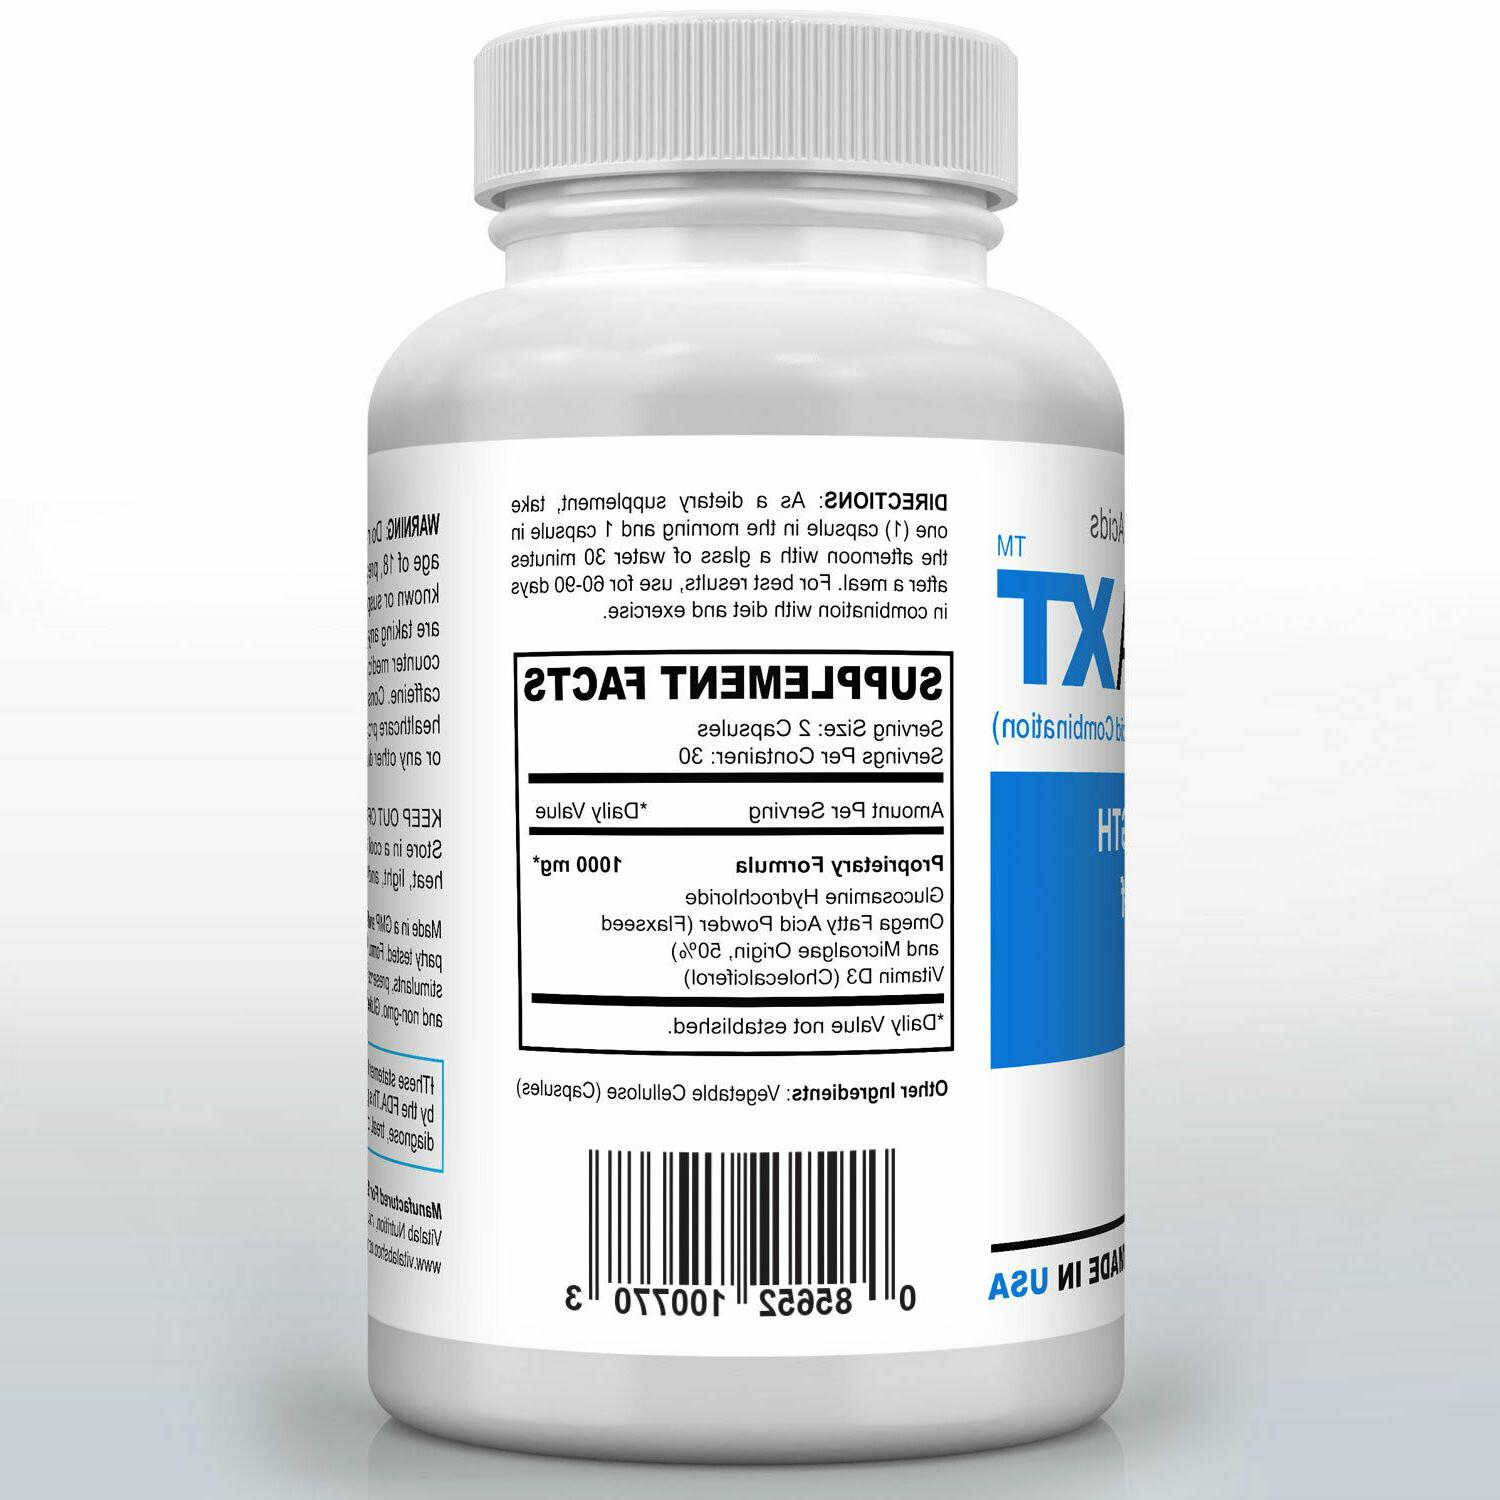 Official Omega XT Strength Support Omega-3 Joint Pain